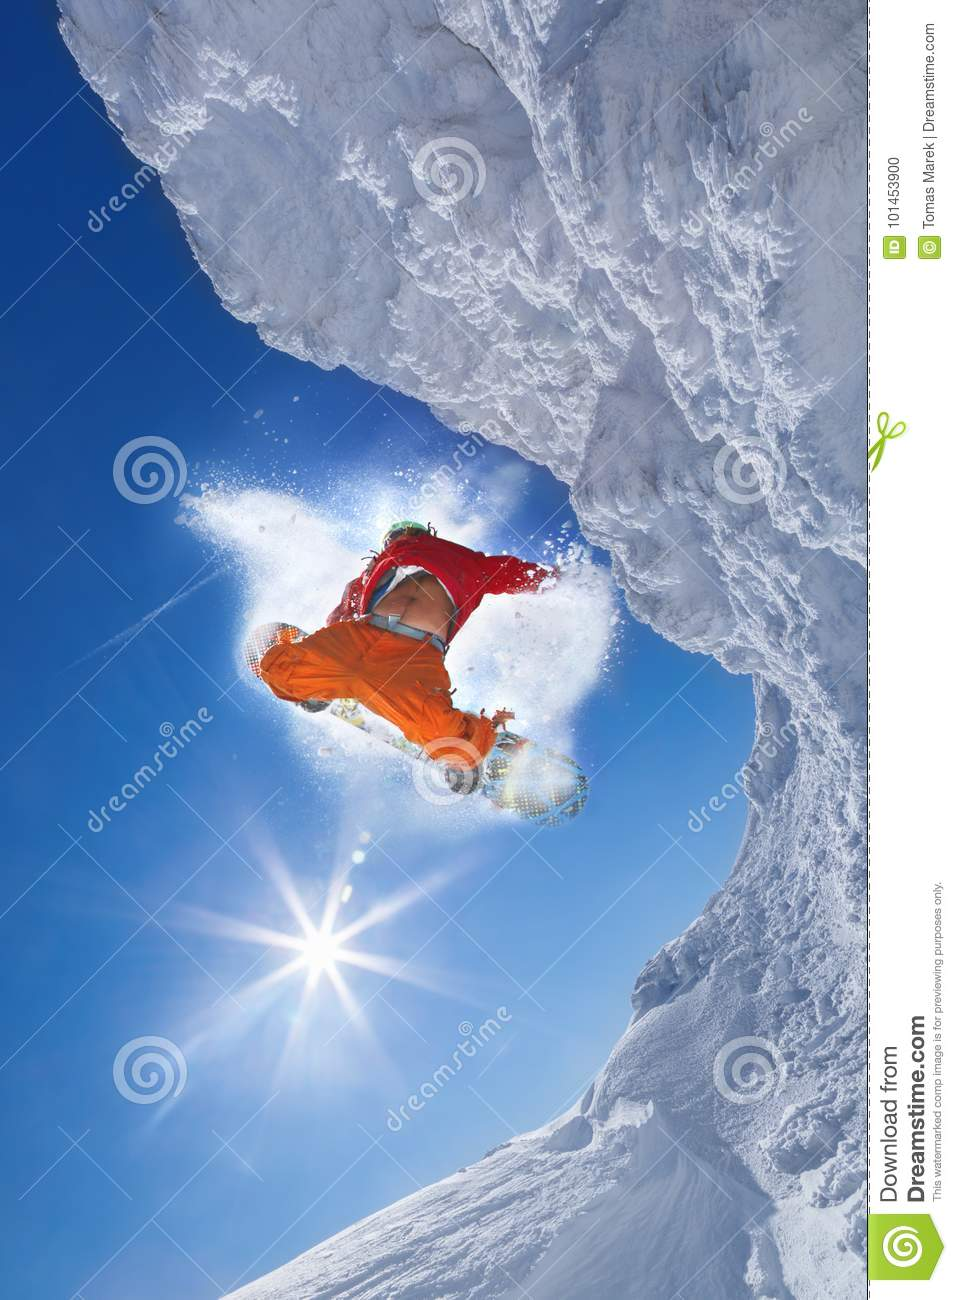 4a292196f36d Snowboarder Jumping Against Blue Sky Stock Photo - Image of alps ...